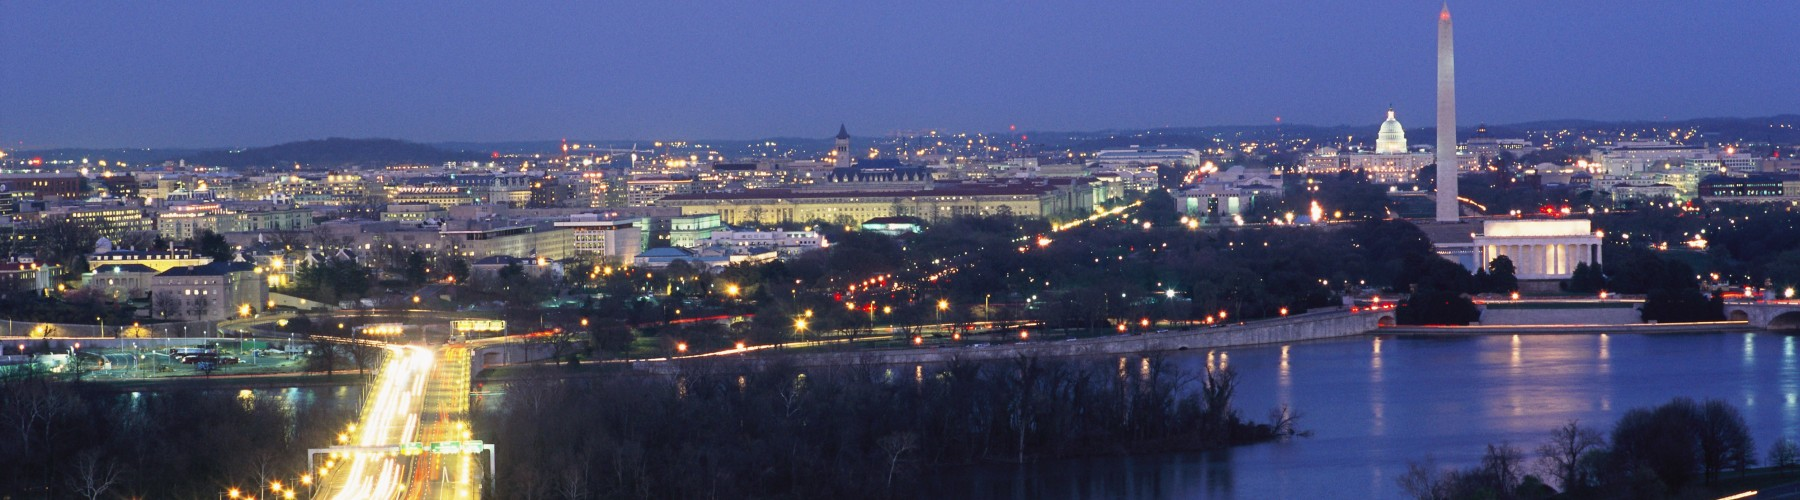 Skyline, Washington D.C., USA --- Image by © Larry Fisher/Masterfile/Corbis